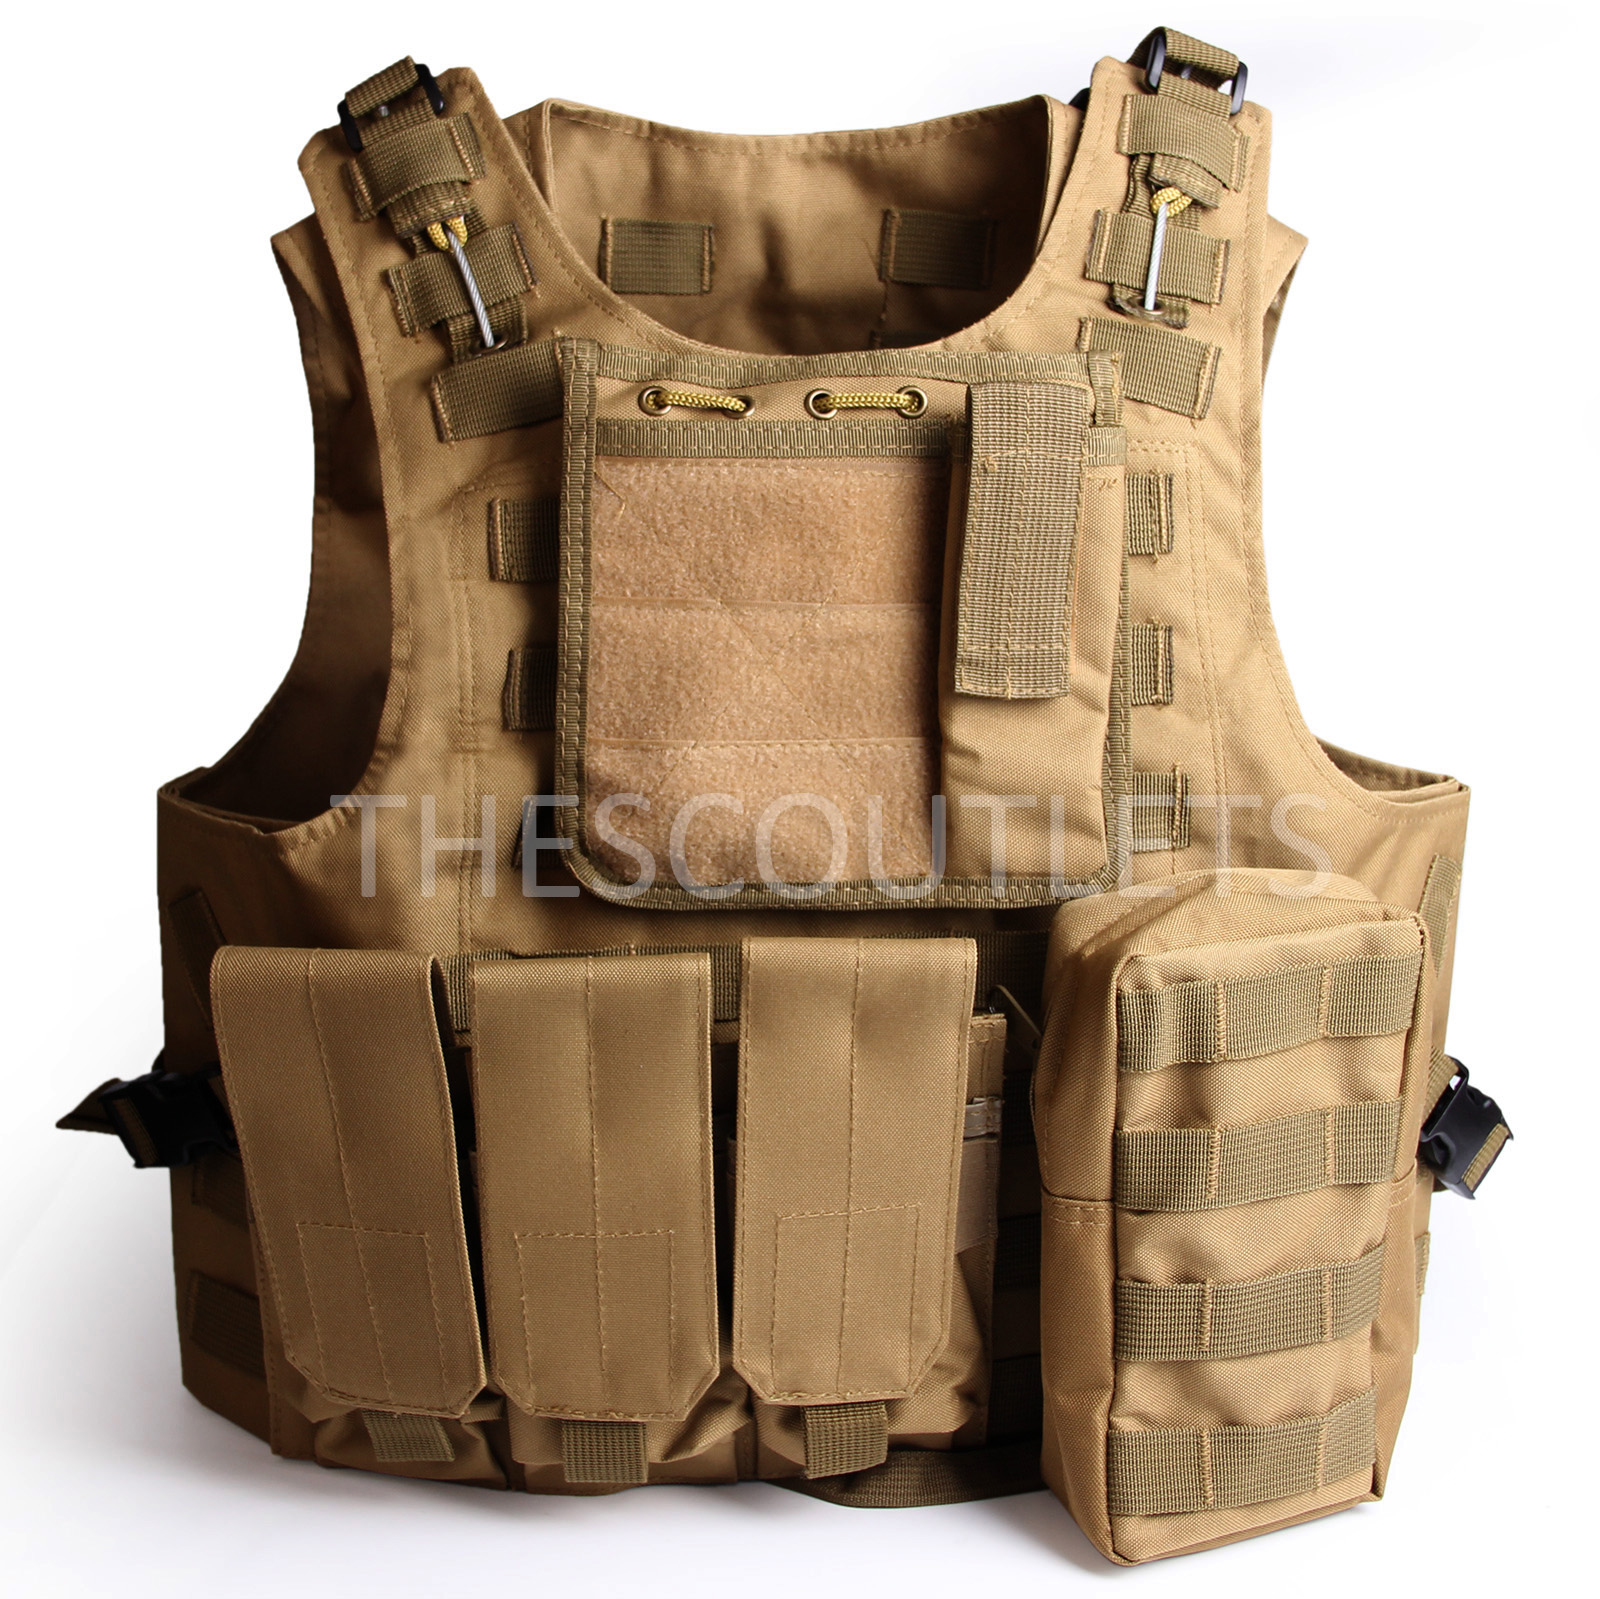 Military-Tactical-Paintball-Army-Molle-Carrier-Adjustable-Airsoft-Combat-Vest thumbnail 20